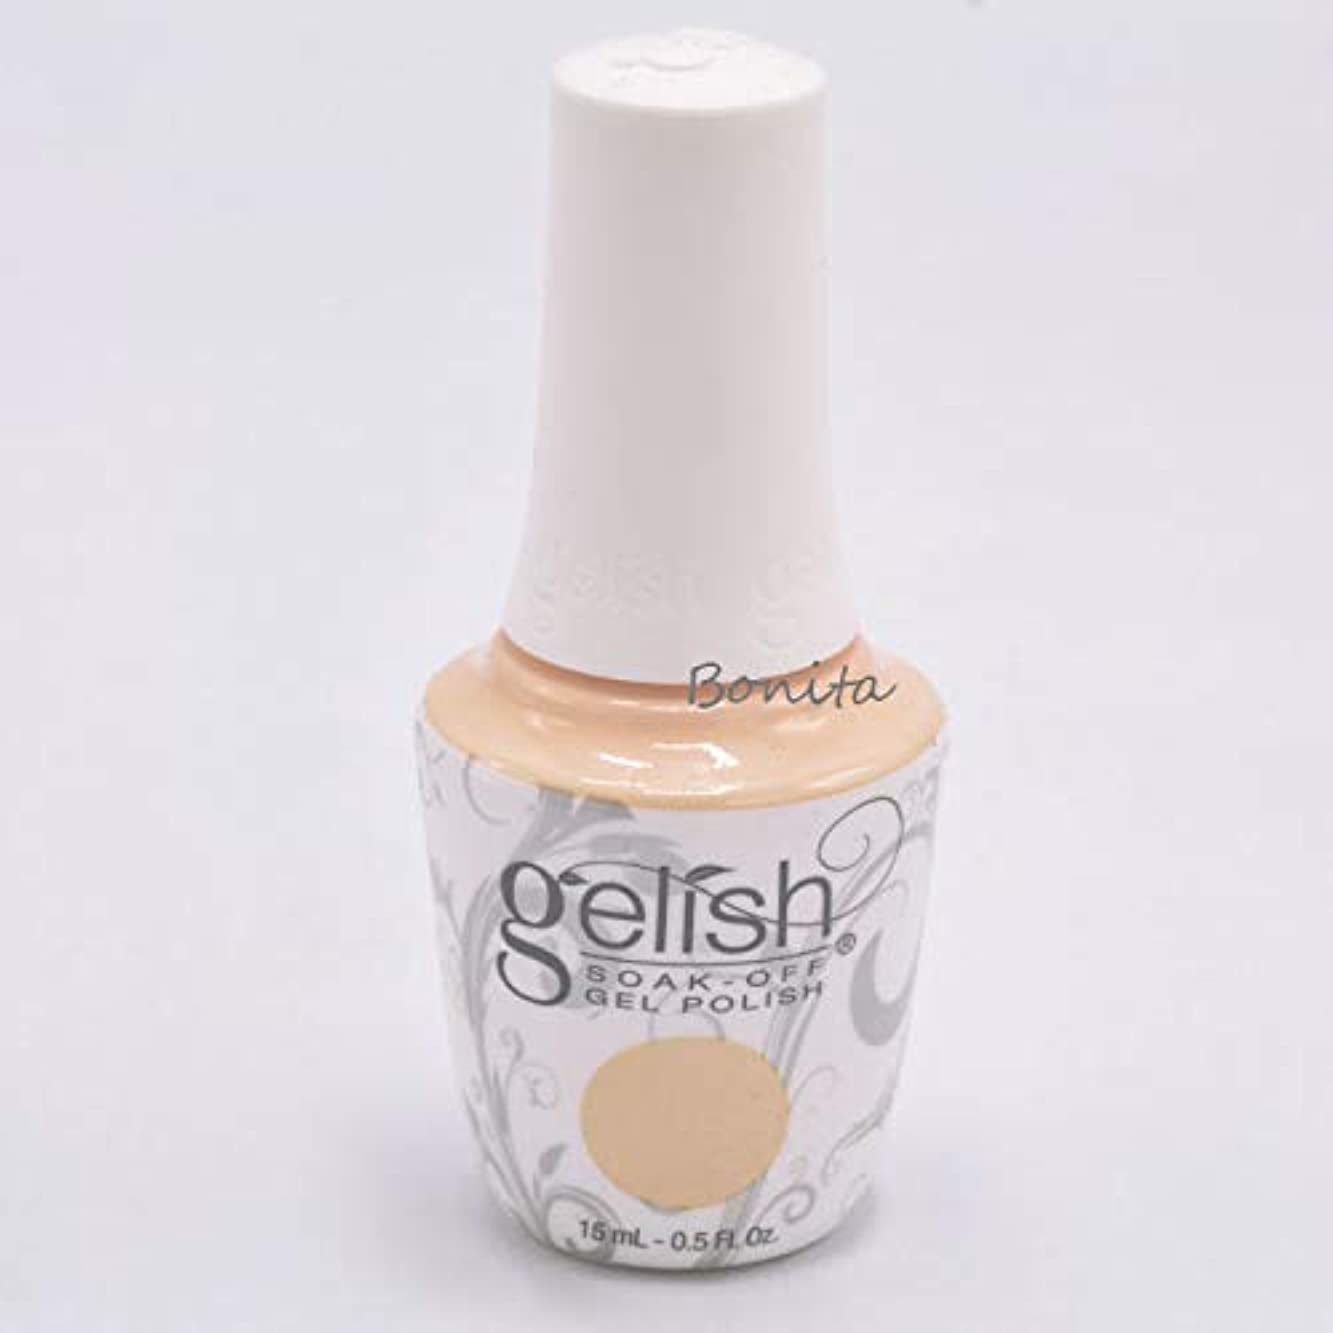 Gelish Soak-Off Gel - Kiss Kiss - 15 ml / 0.5 oz